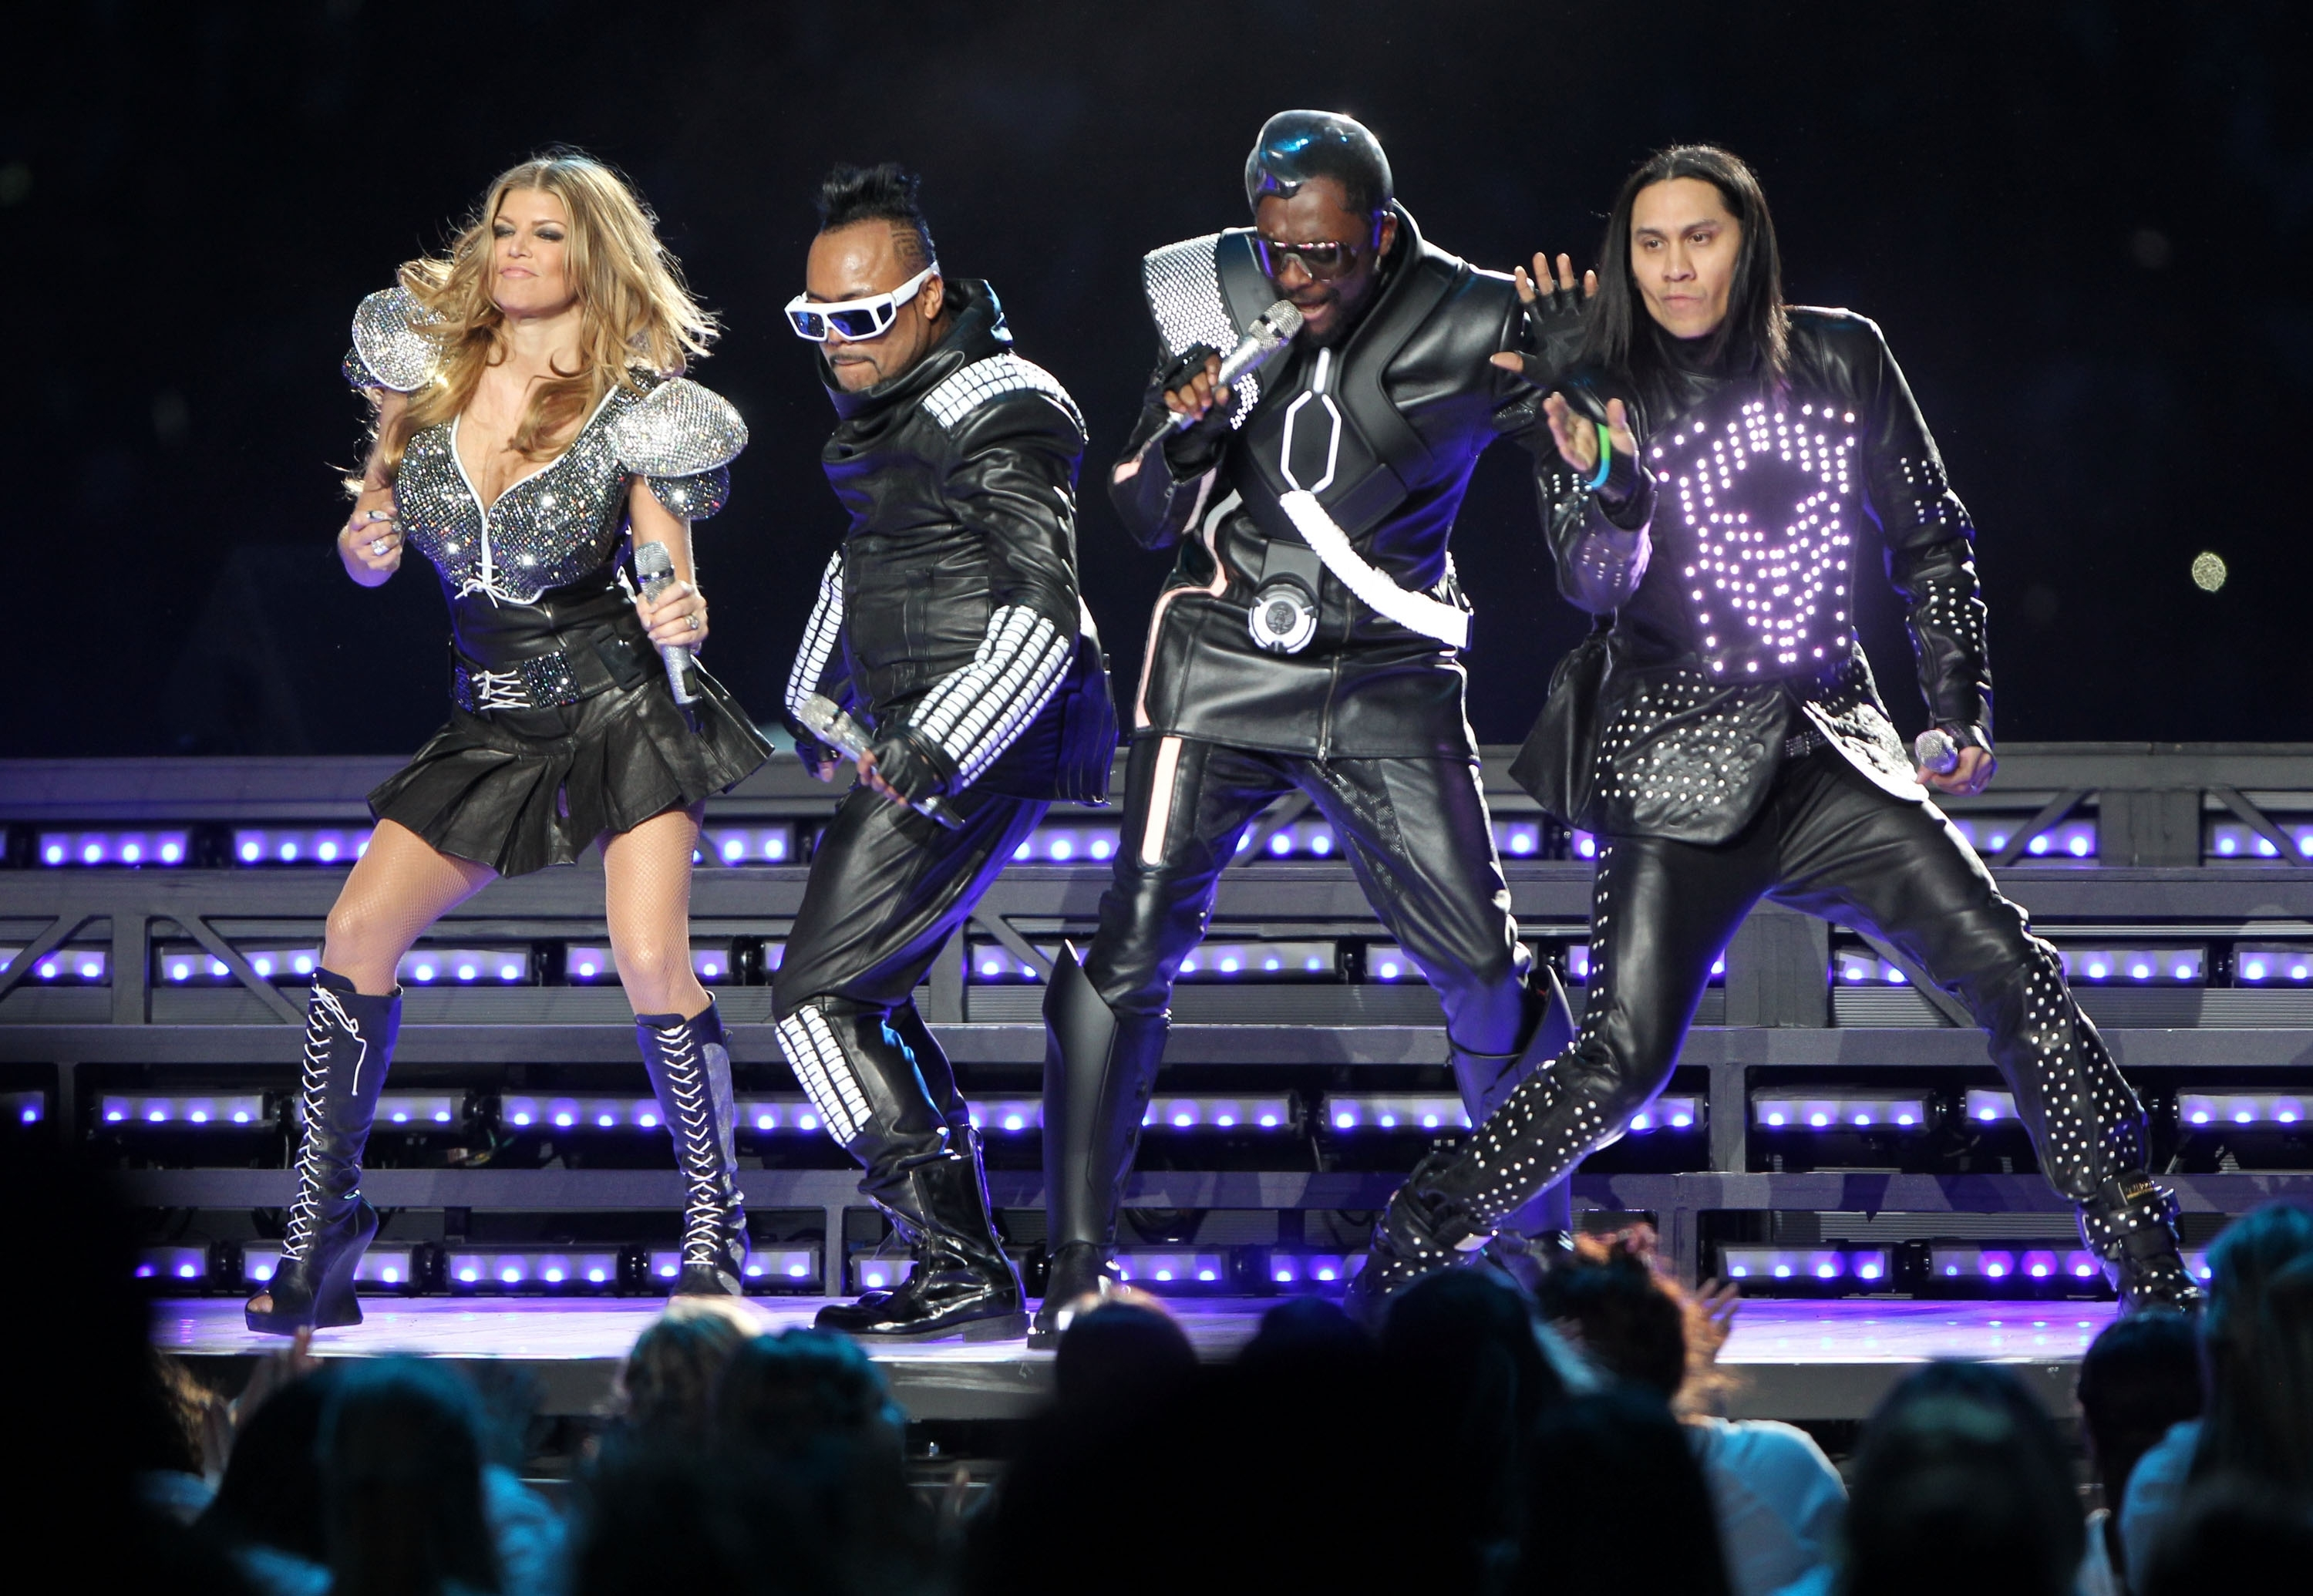 The Definitive Ranking Of The Last 5 Super Bowl Halftime intended for Black Eyed Peas Super Bowl